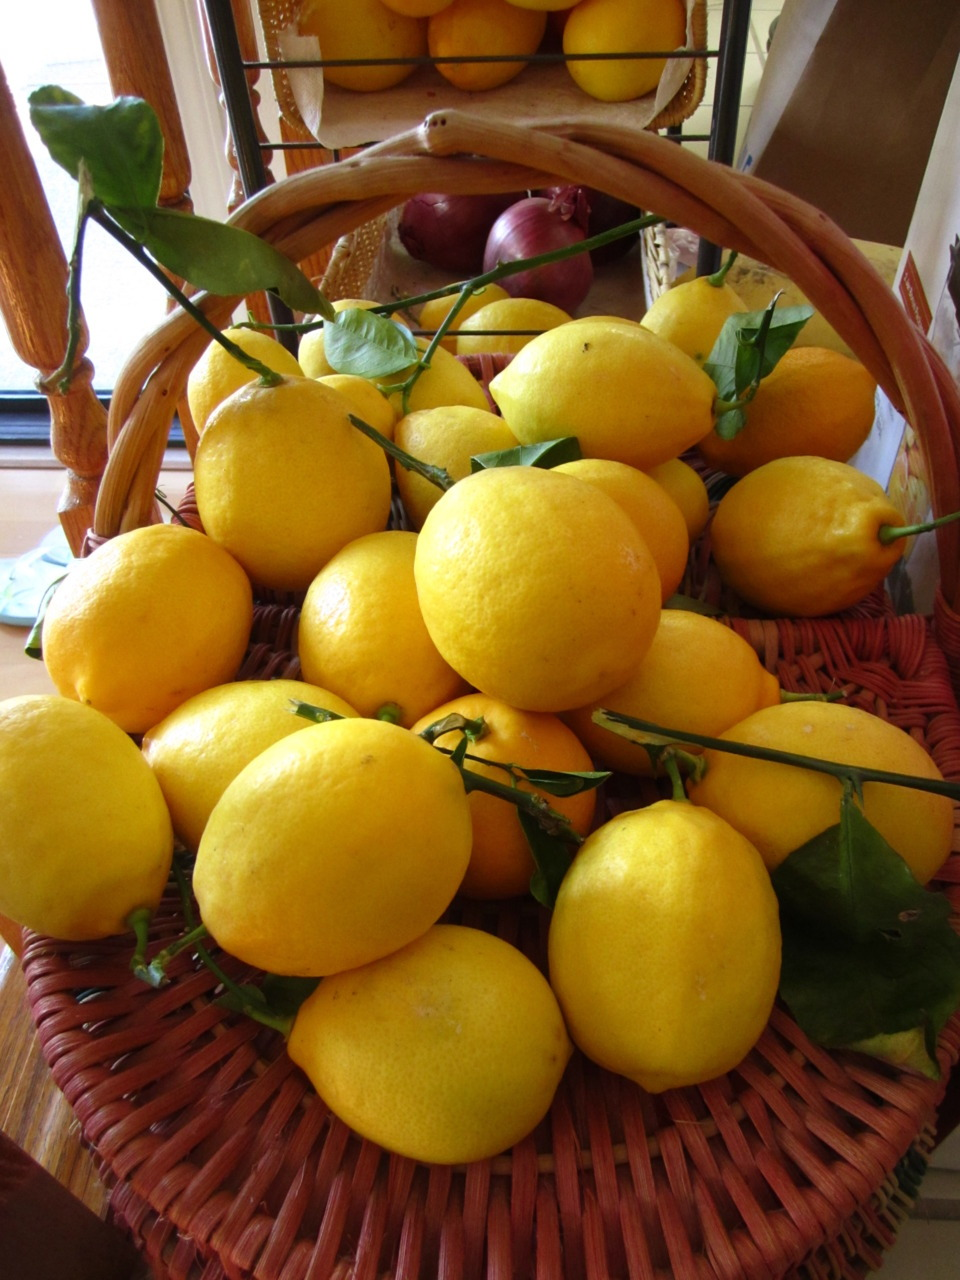 Lemons from my backyard. (: It's such a wonderfully sunny day; Yay California!